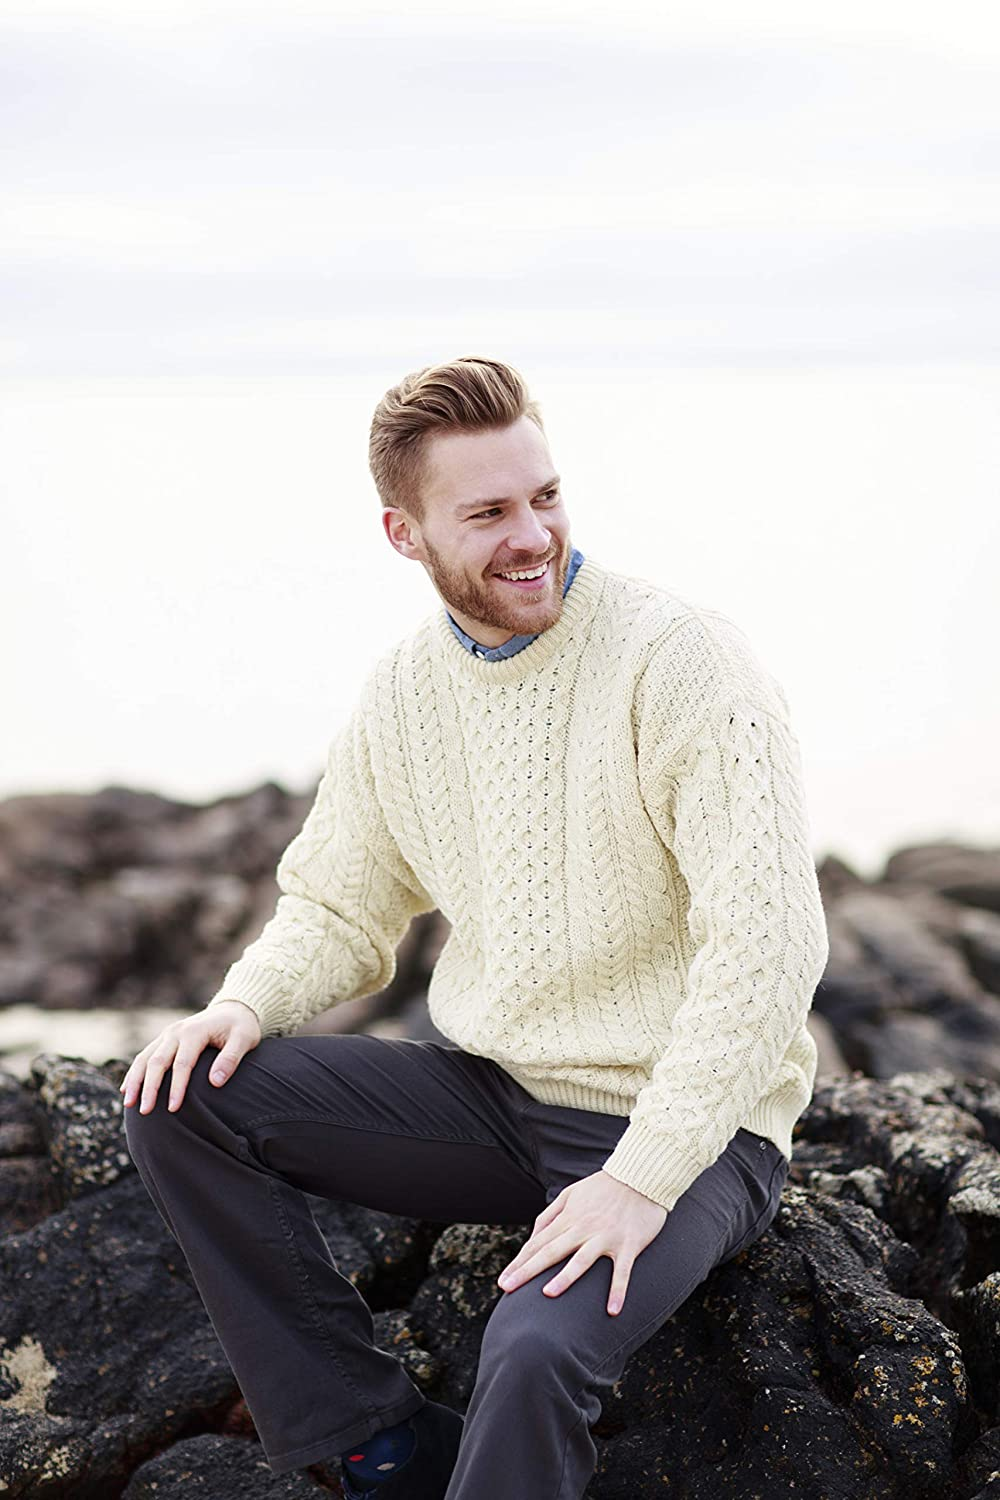 Men's Vintage Sweaters – 1920s to 1960s Retro Jumpers Traditional Wool Crew Neck Aran Sweater $89.95 AT vintagedancer.com